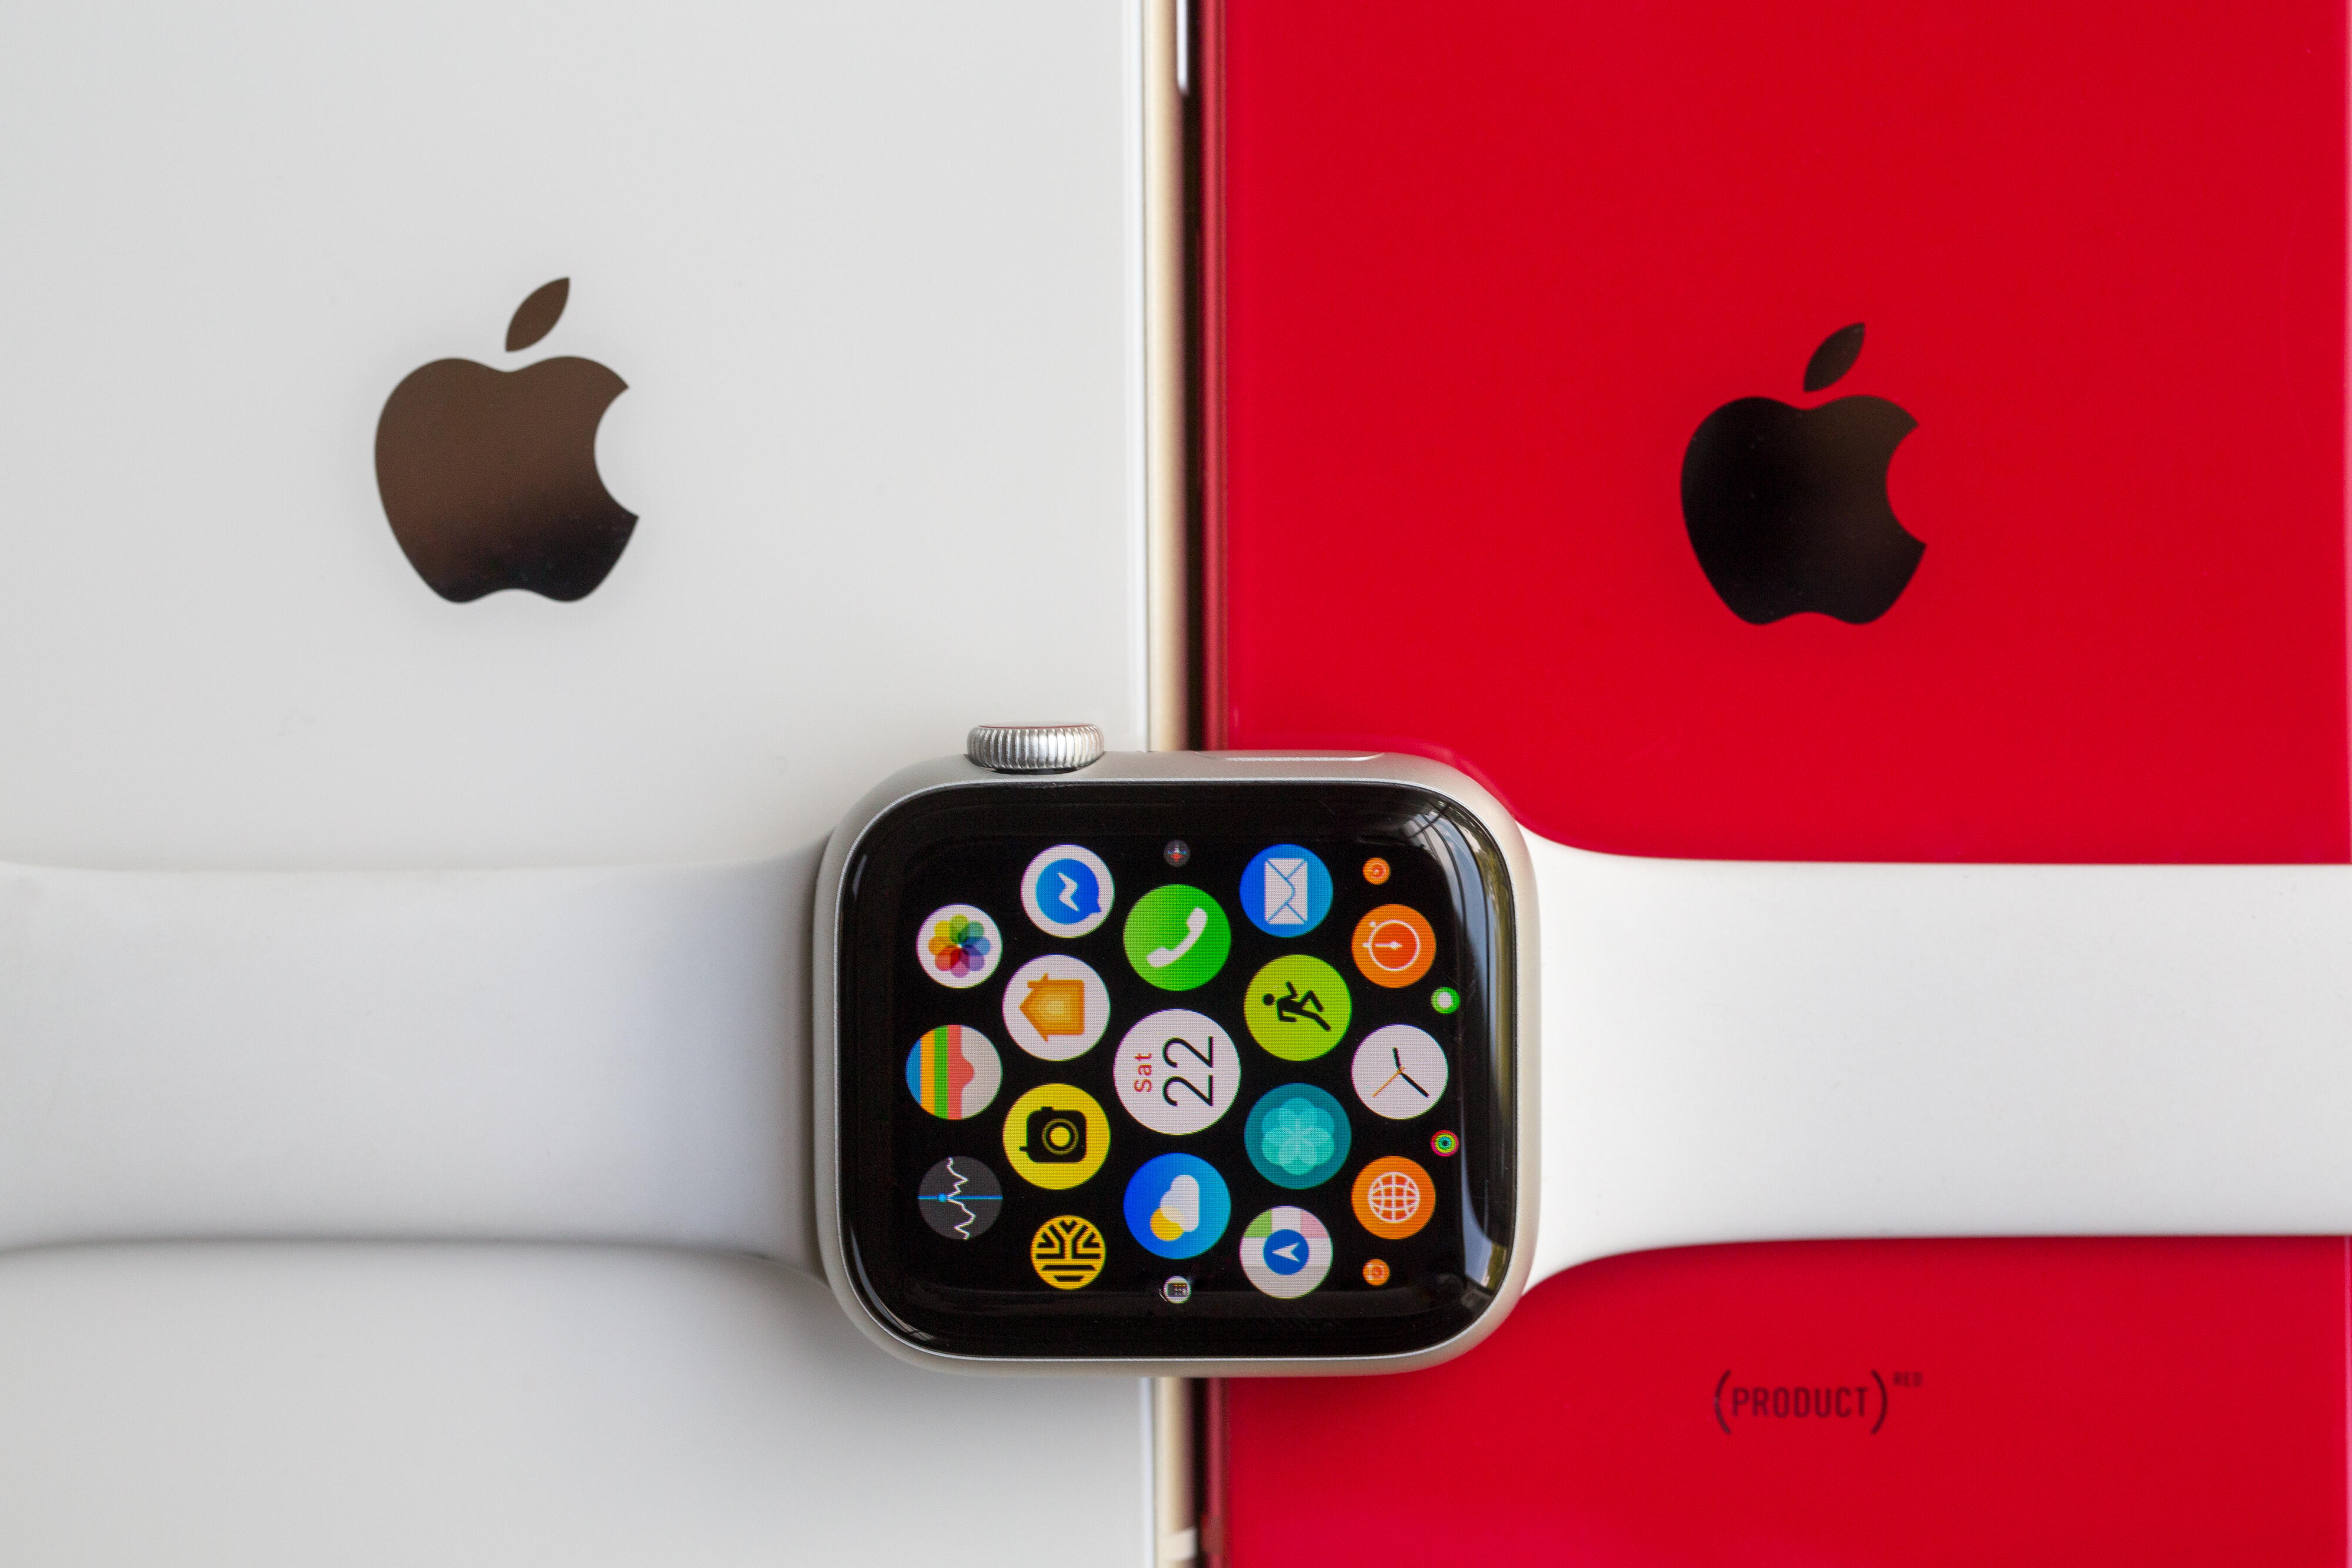 Apple Watch and iPhone 13